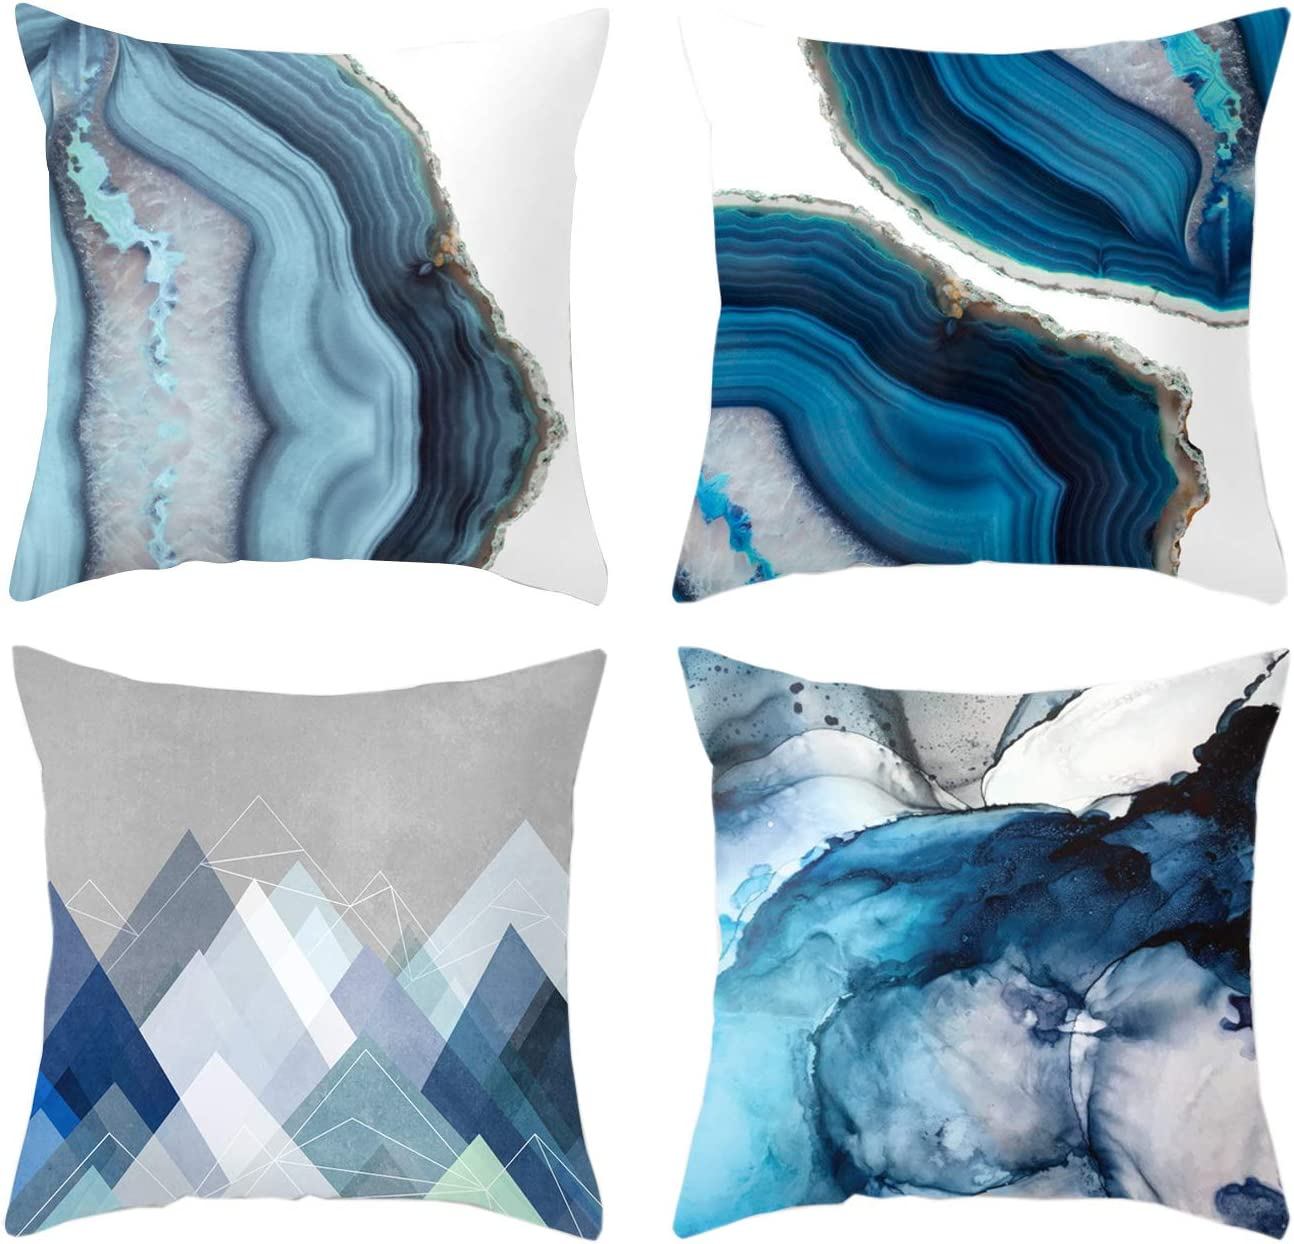 Pack of 4 Summer Navy Blue Super beauty product restock quality top! Covers Texture Pillow Max 68% OFF Throw Sea Peach